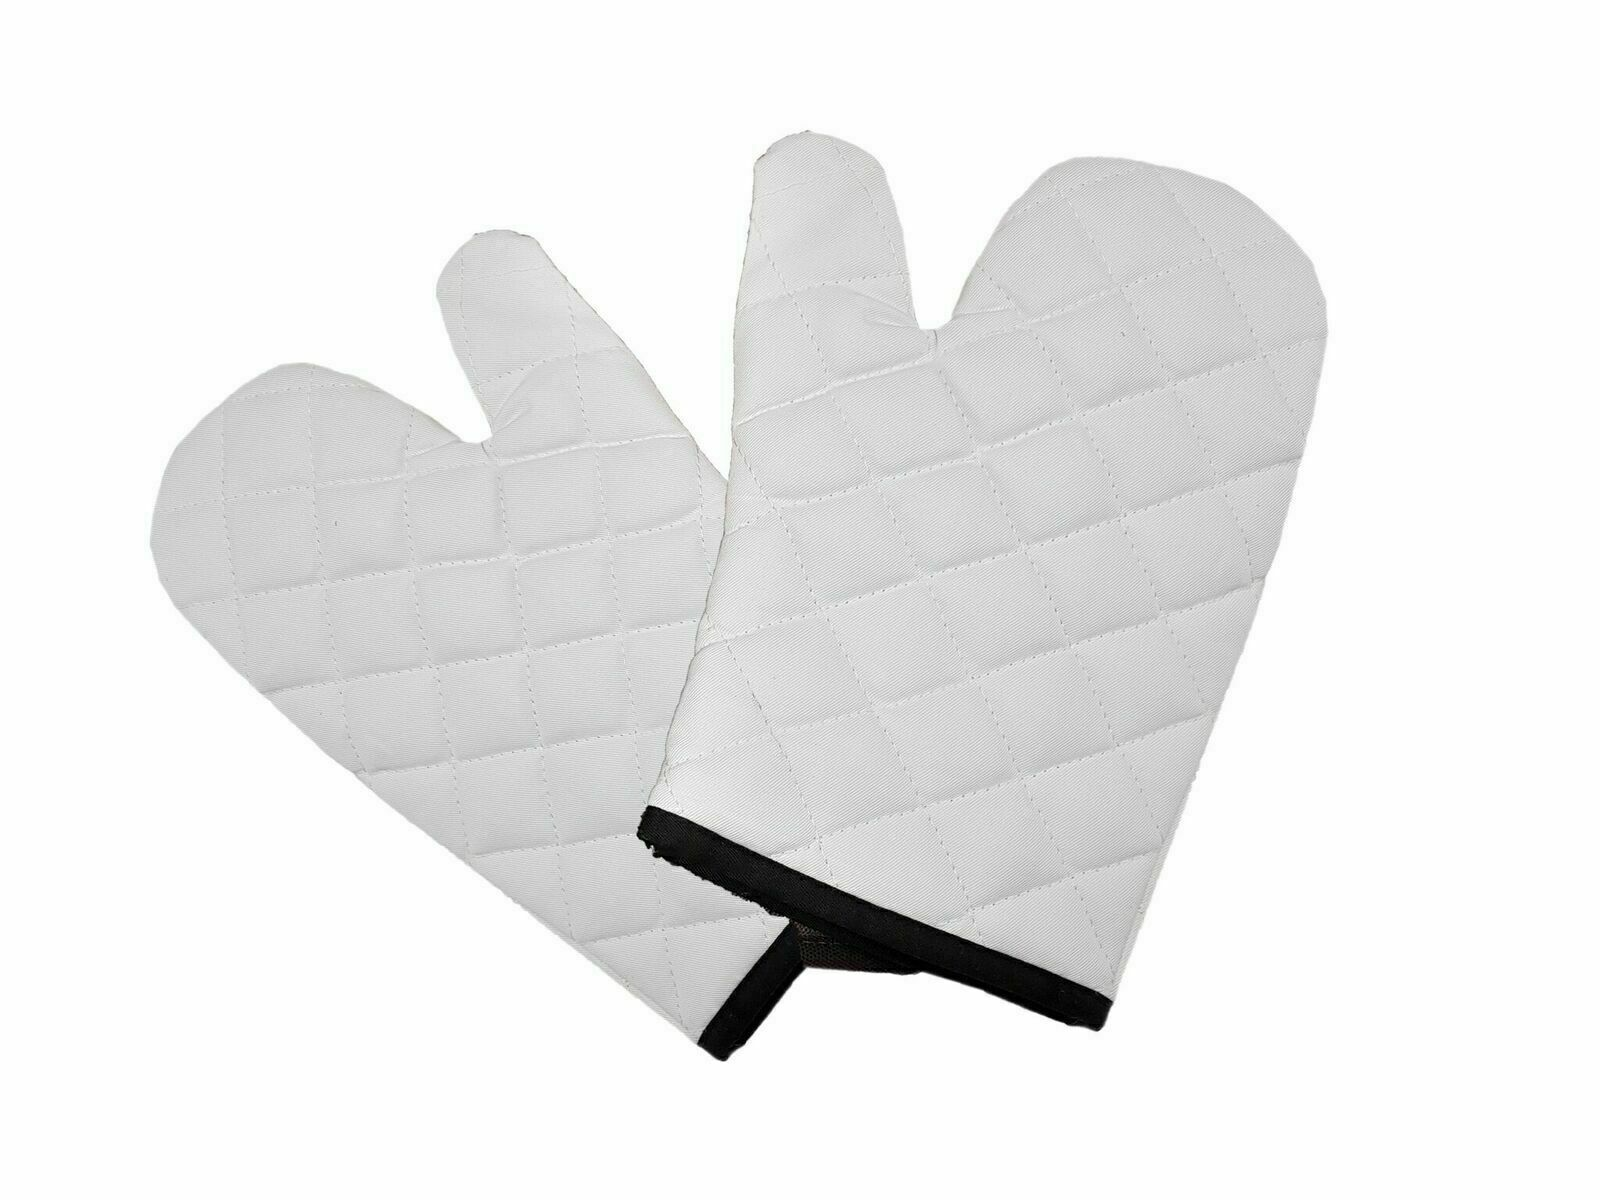 1 Pair Oven Gloves Heat Resistant Quilted Mitts Skin Friendly For Cooking Baking